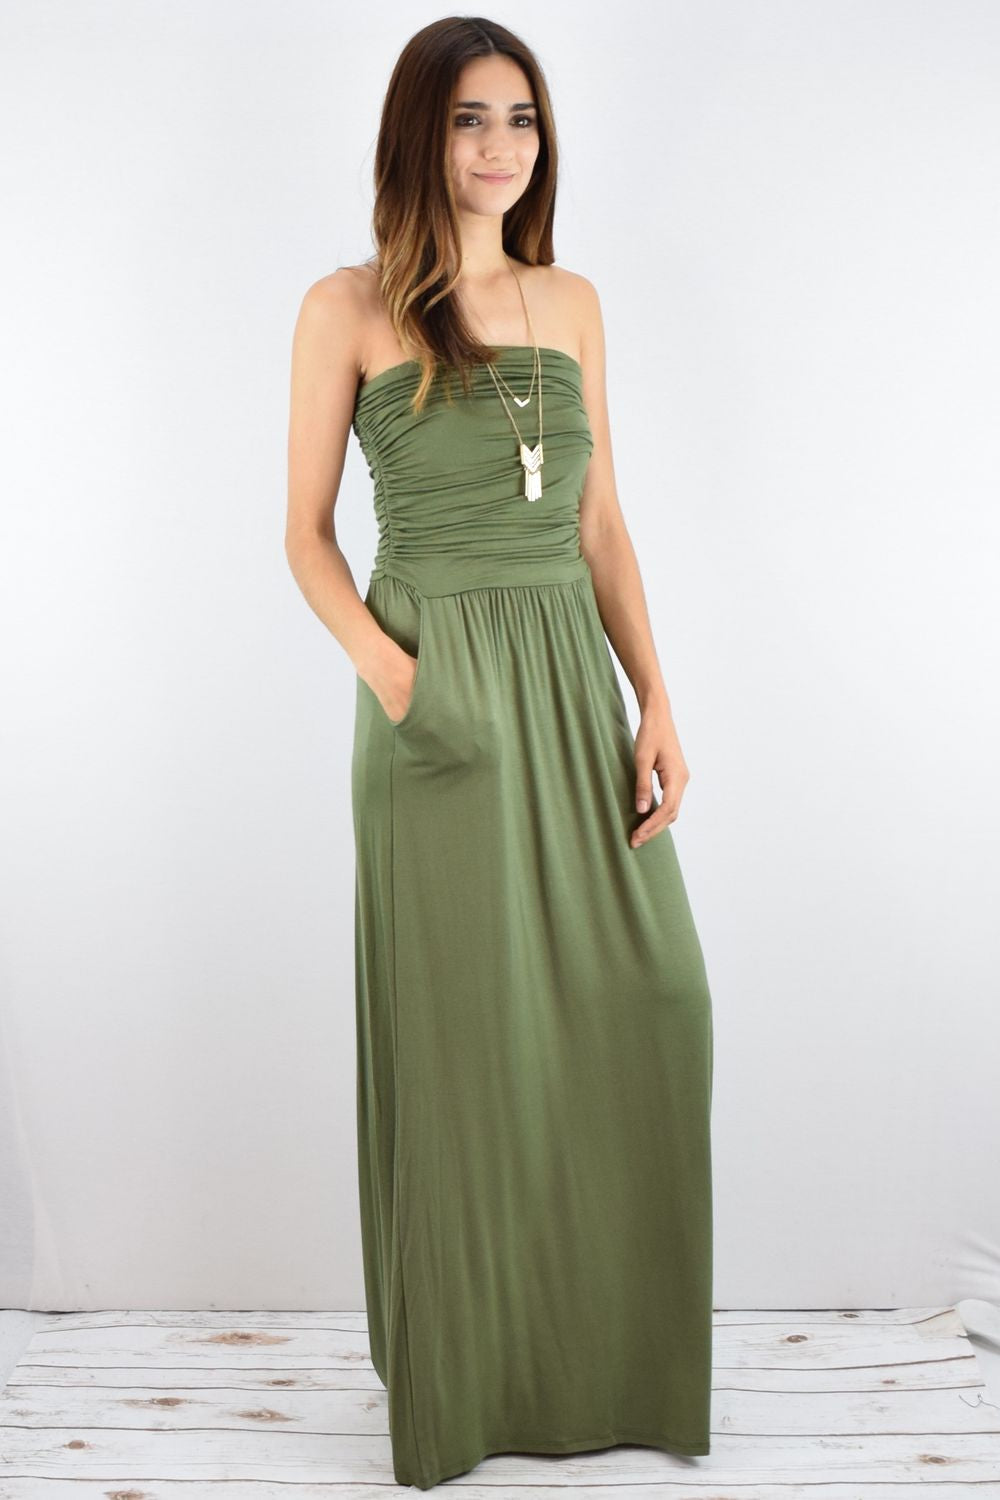 Solid Olive Tube Top Maxi Dress